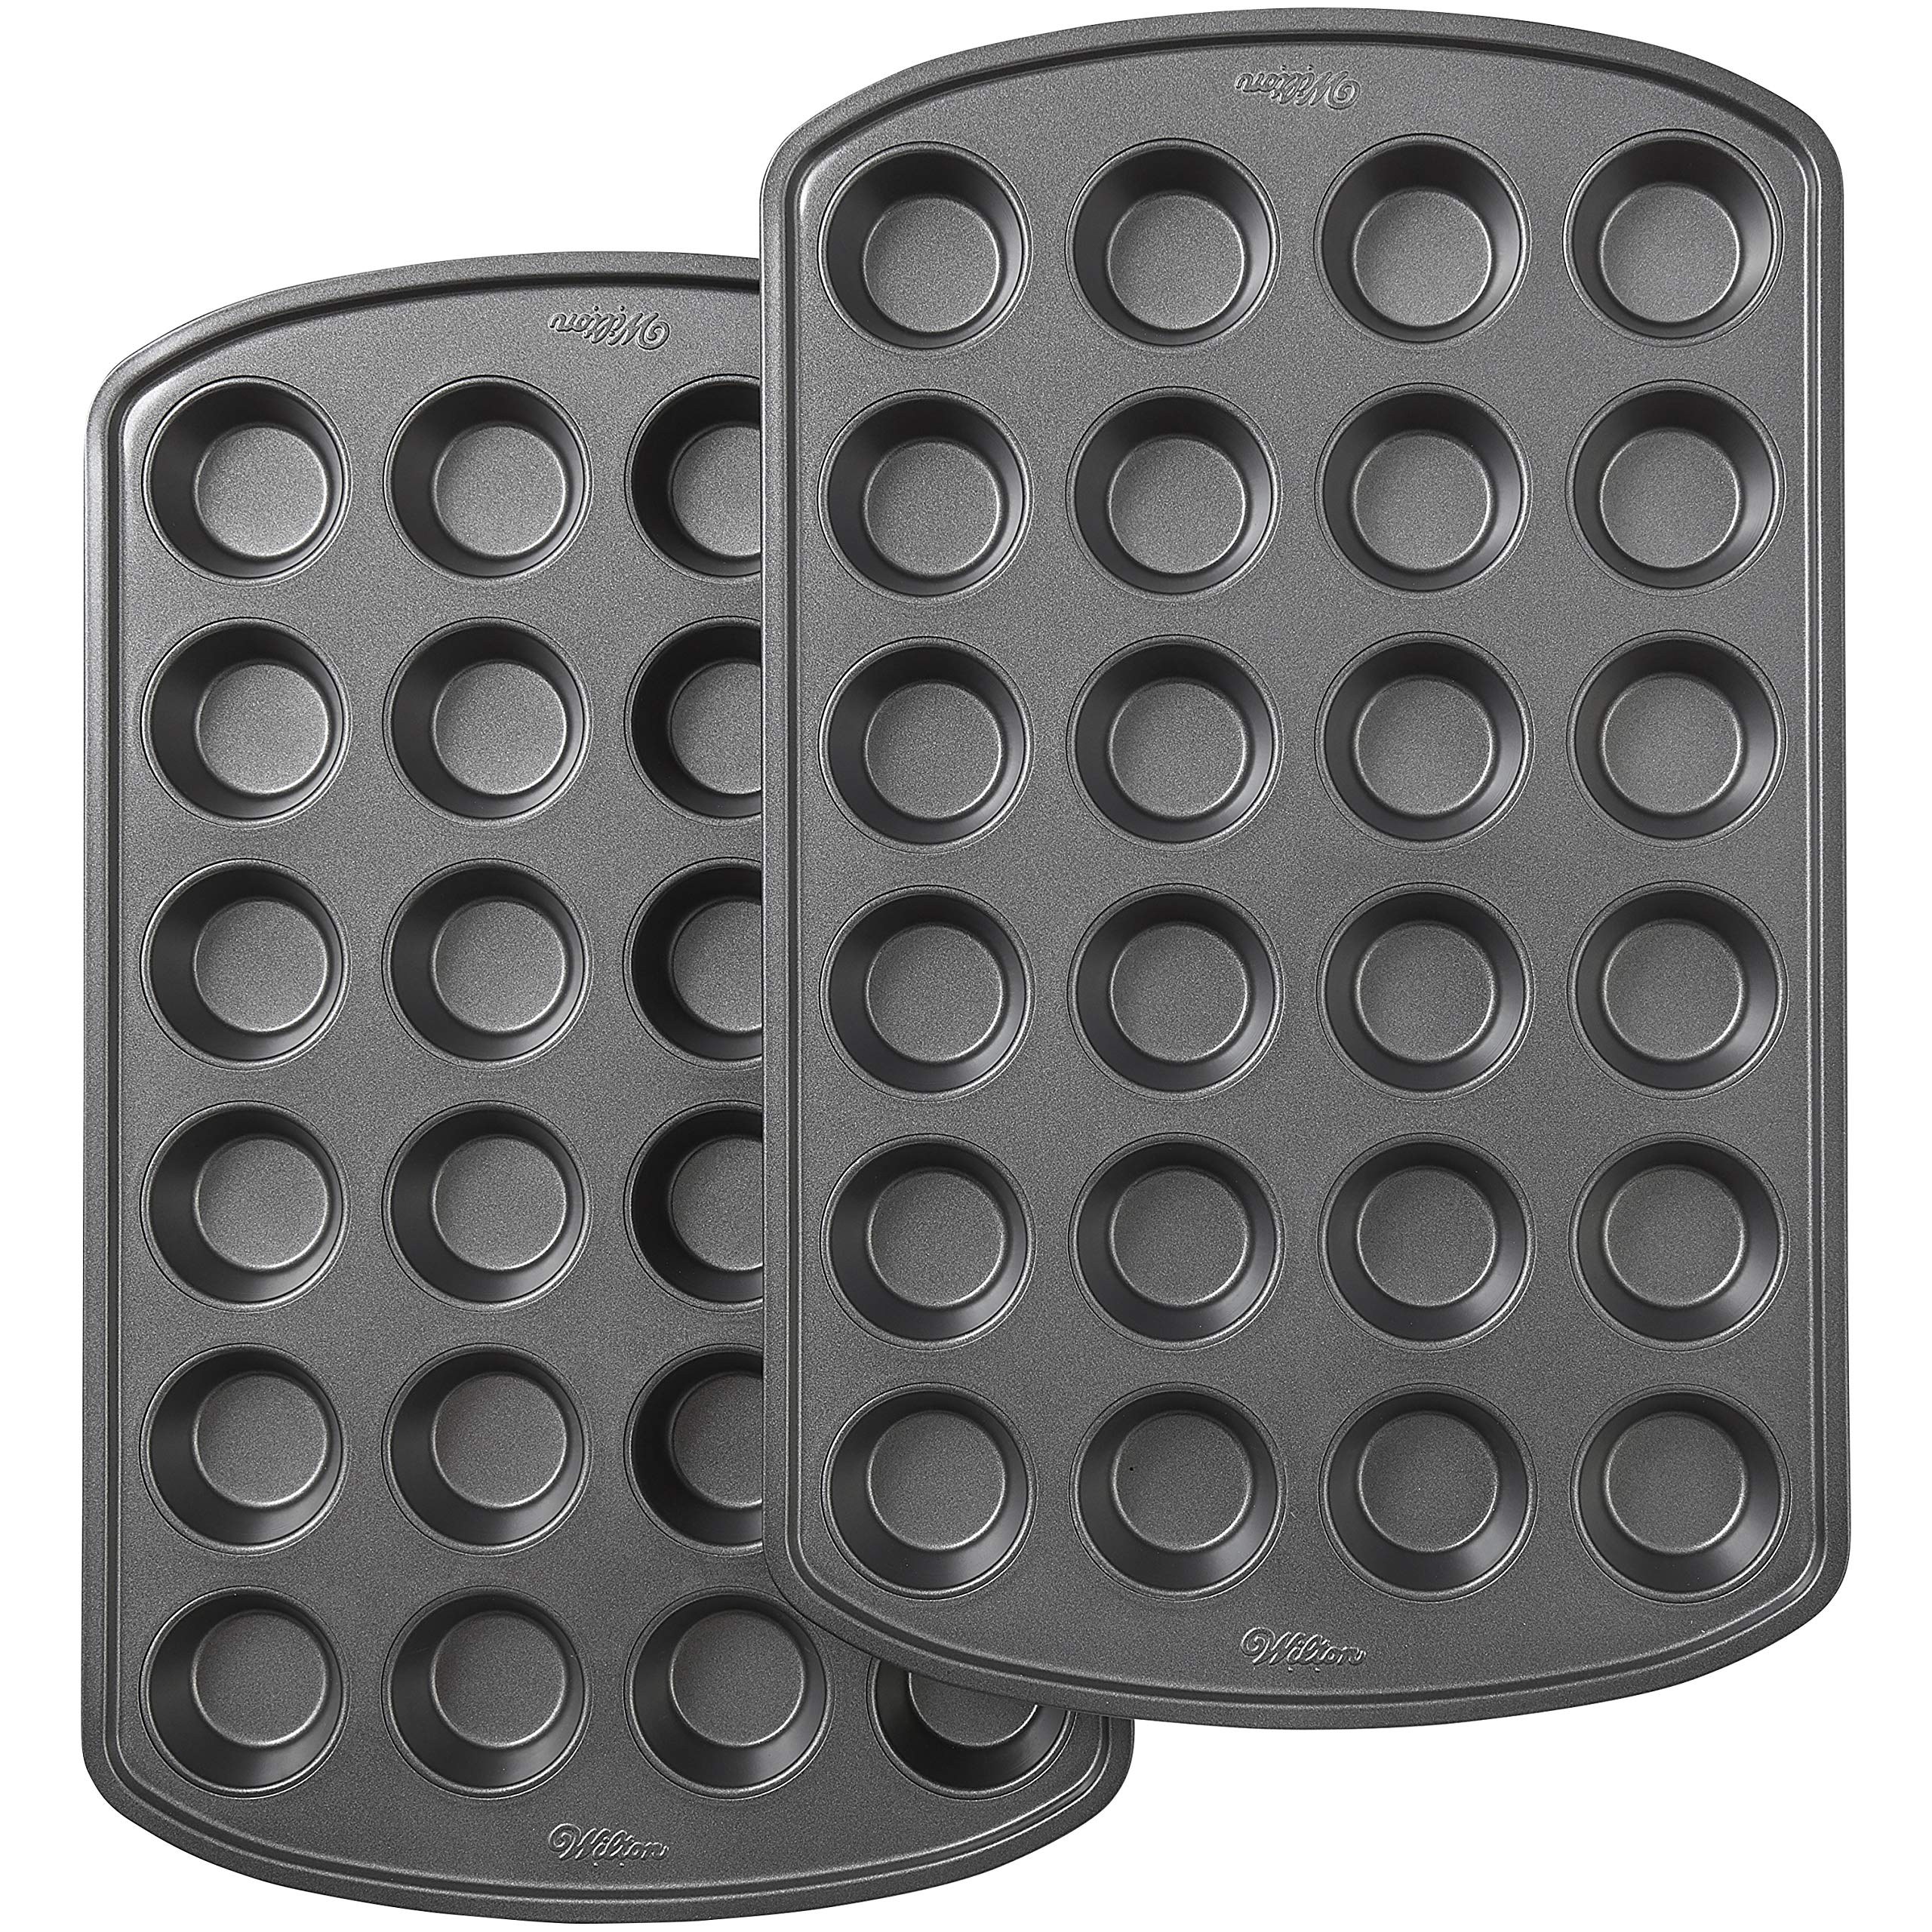 Wilton Perfect Results Premium Non-Stick 24-Cup Mini Muffin and Cupcake Pan, Set of 2 by Wilton